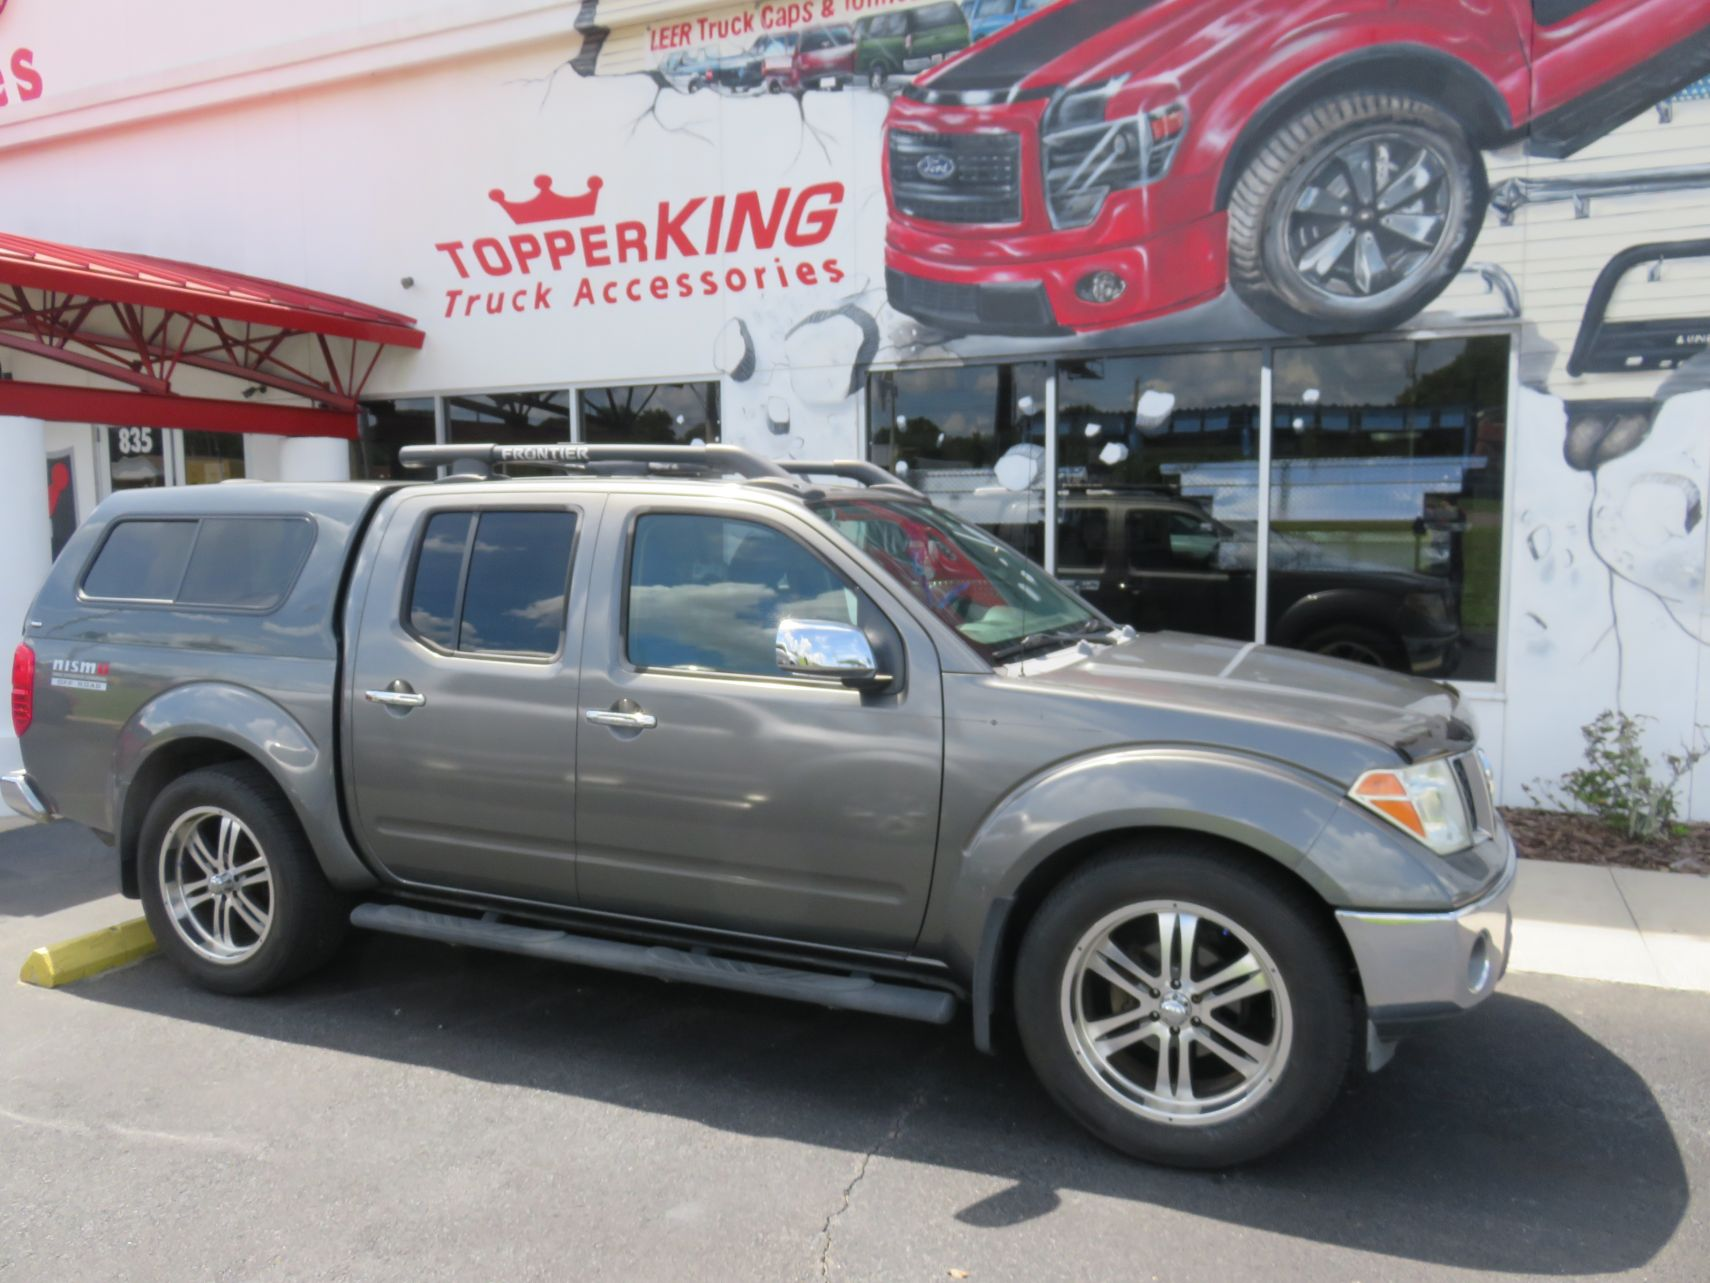 2006 Nissan Frontier with Ranch Sierra Fiberglass Topper, Nerf Bars, Bug Guard, Tint. Call TopperKING in Brandon 813-689-2449 or Clearwater FL 727-530-9066.